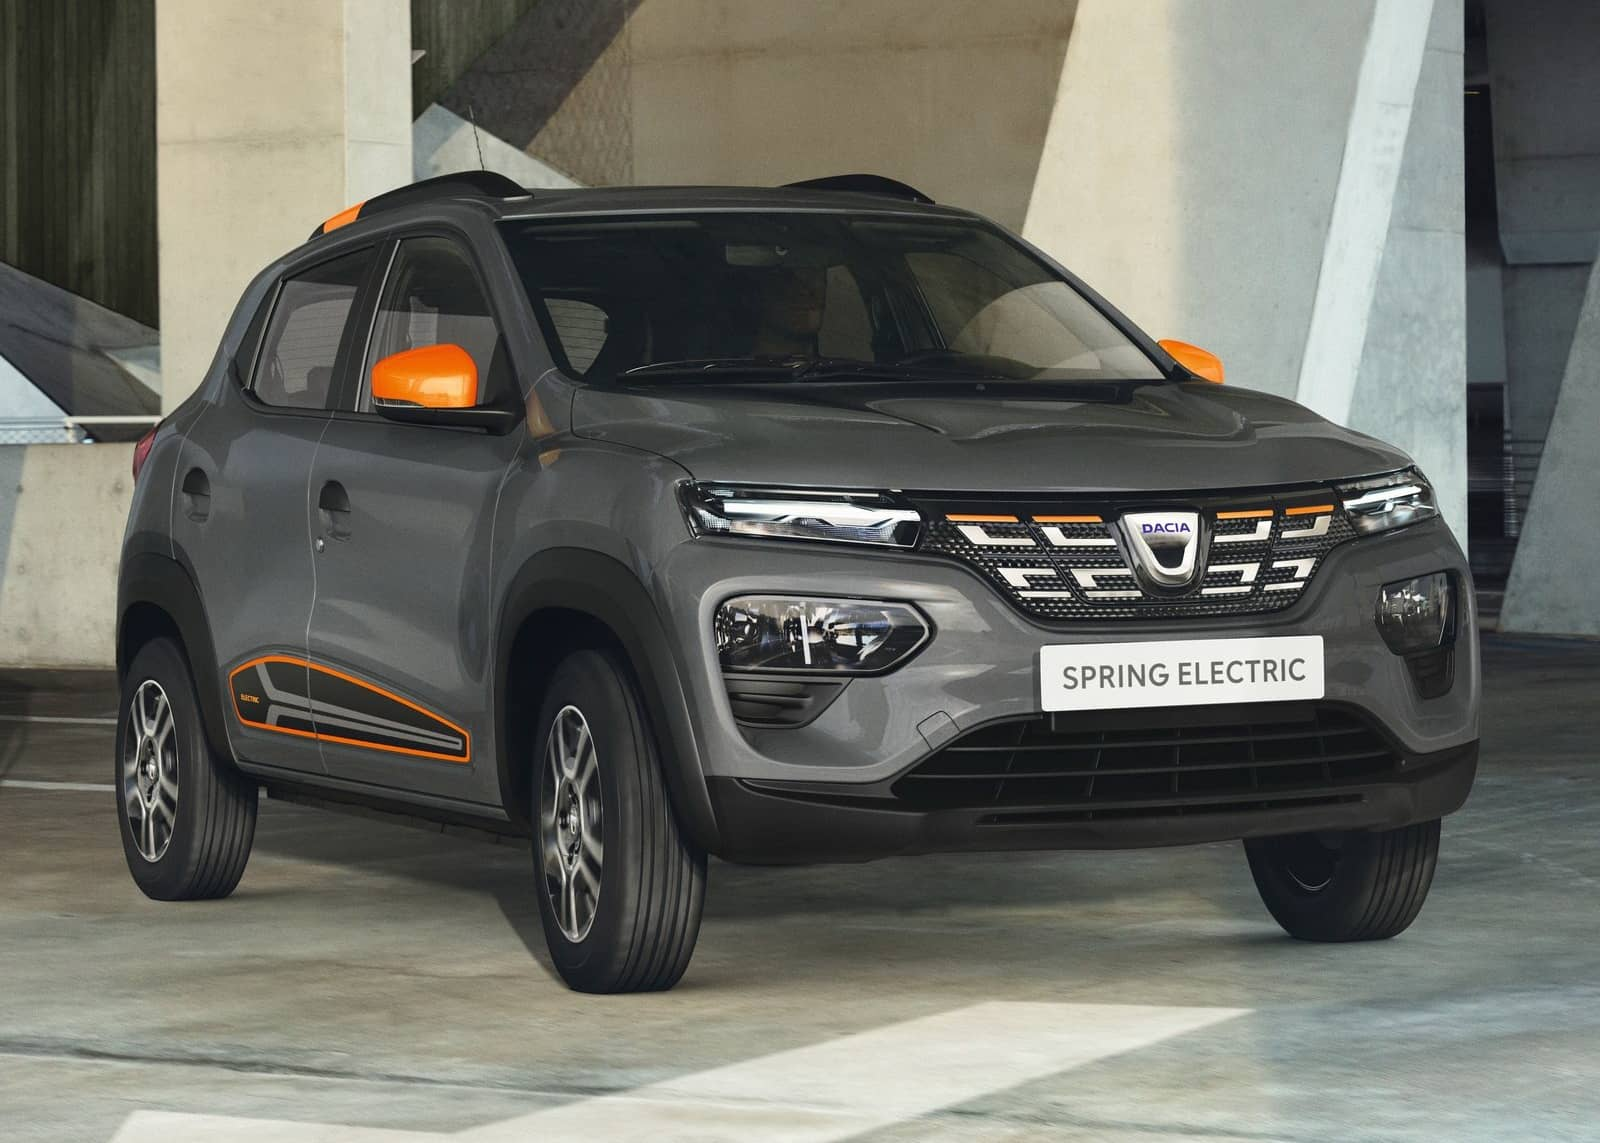 Dacia-Spring_Electric-2022-1600-04